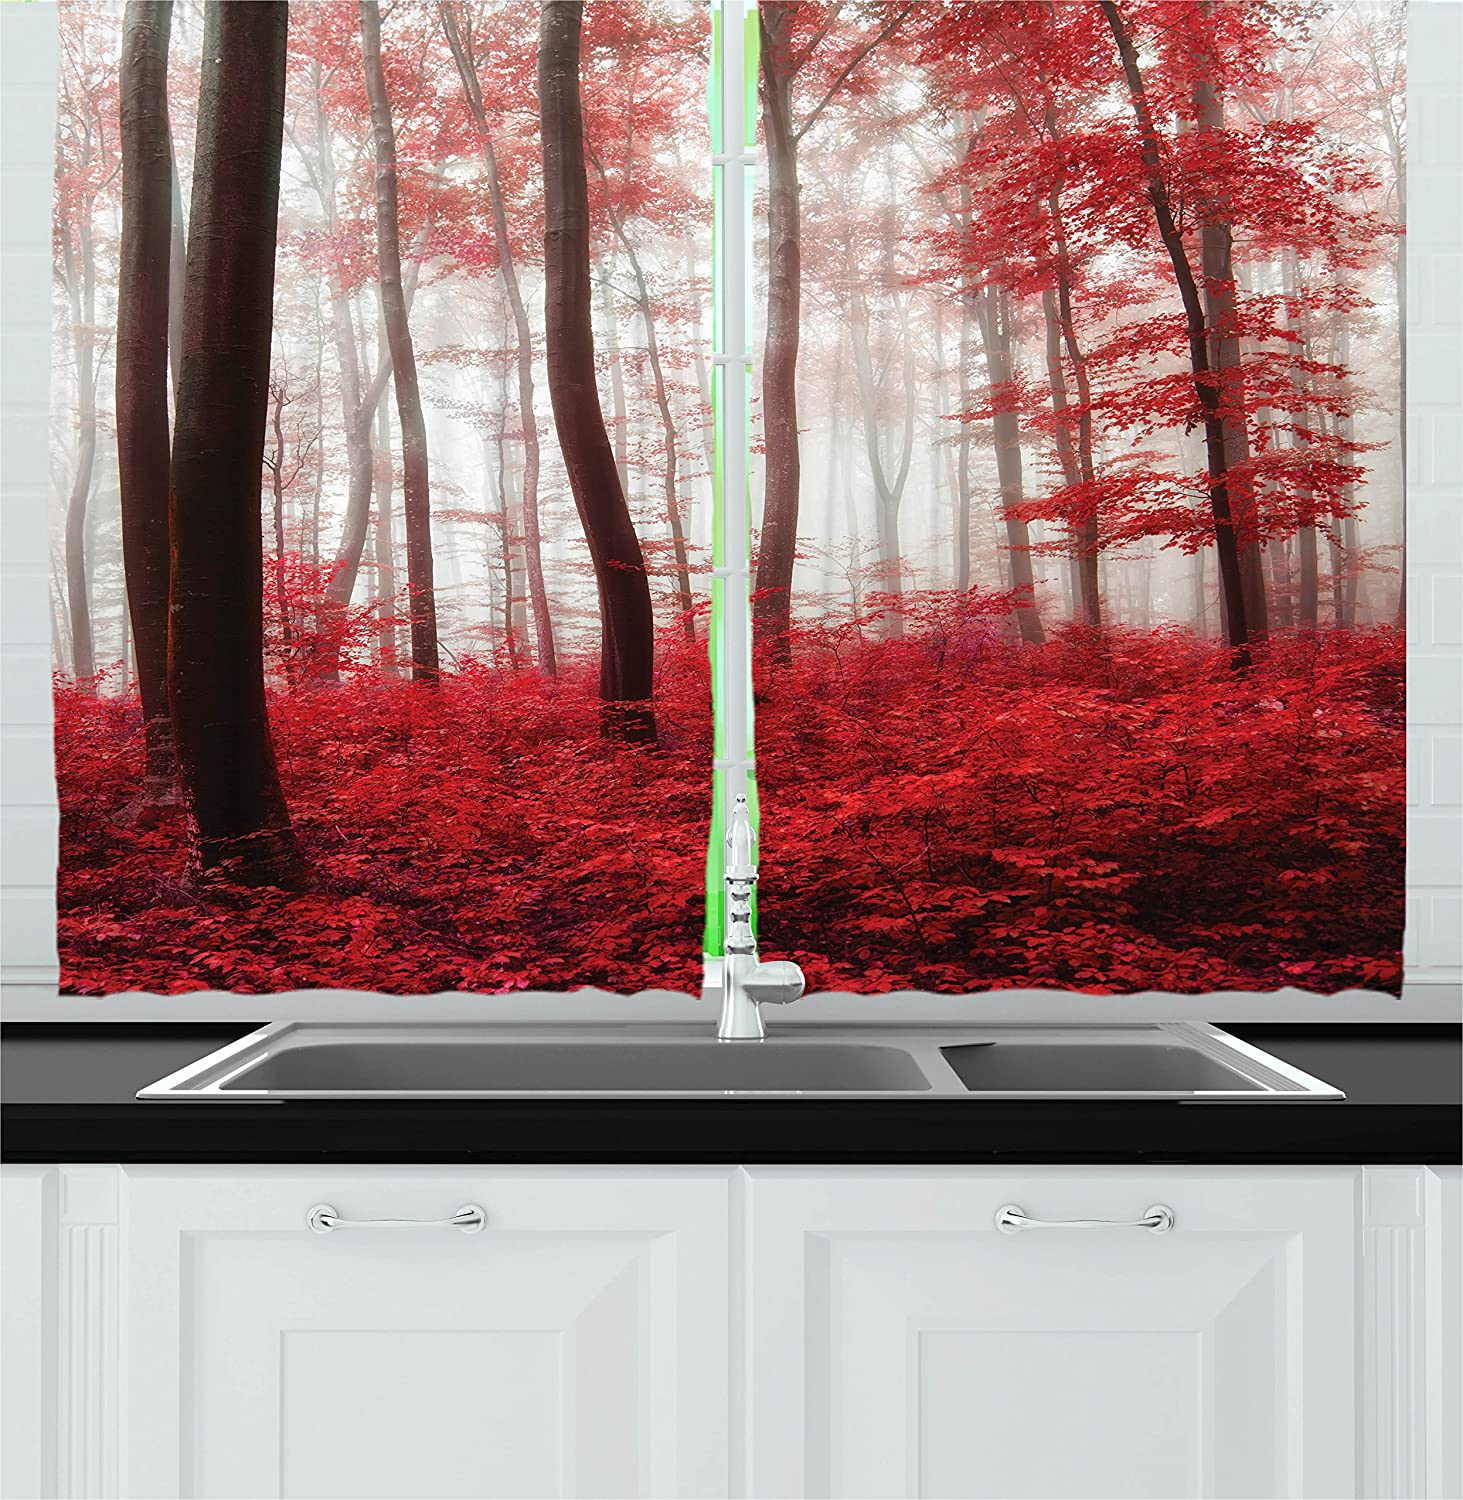 Lake House Decor Kitchen Curtains by Ambesonne, Saturated Picture of Dreamy Mystic Forest with Vivid Effects Mother Earth, Window Drapes 2 Panels Set for Kitchen Cafe, 55W X 39L Inches, Red White